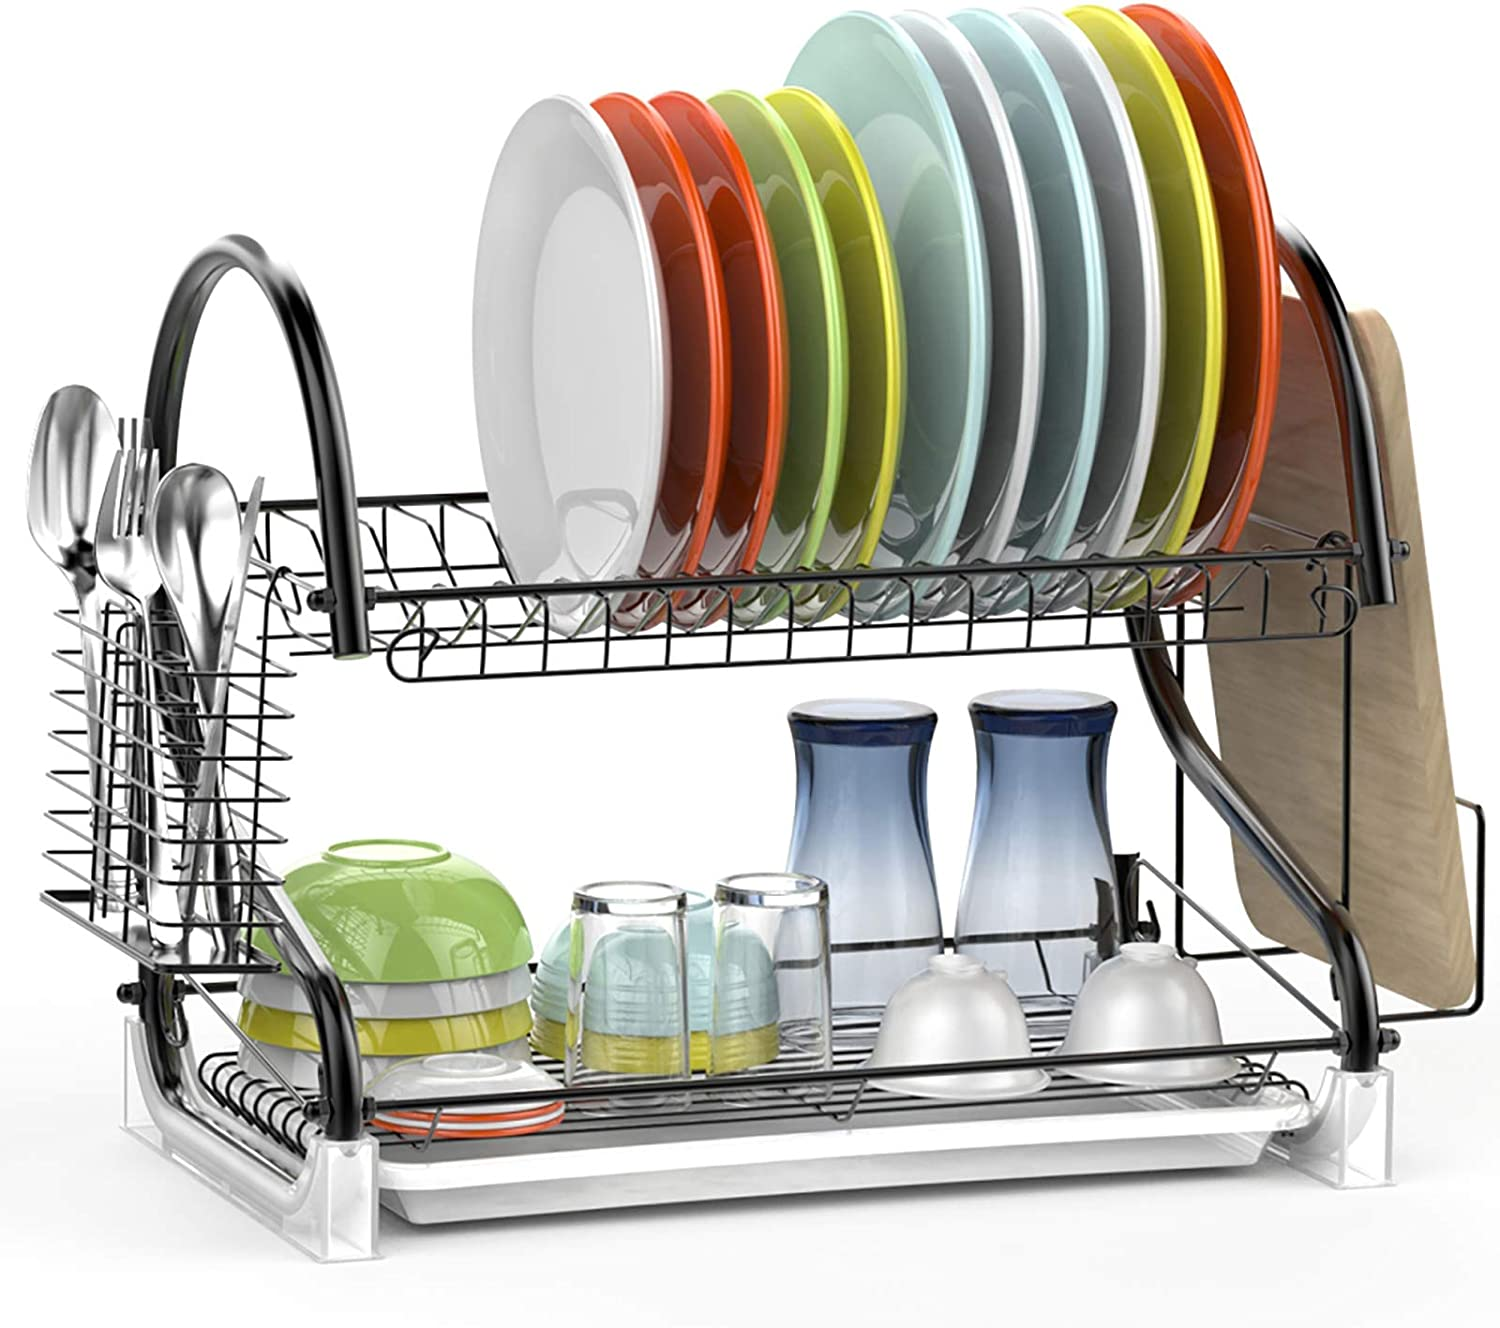 Max 78% OFF Dish Dying Rack Ace Teah 2 Holder Pl Brand Cheap Sale Venue Tier Utensil with